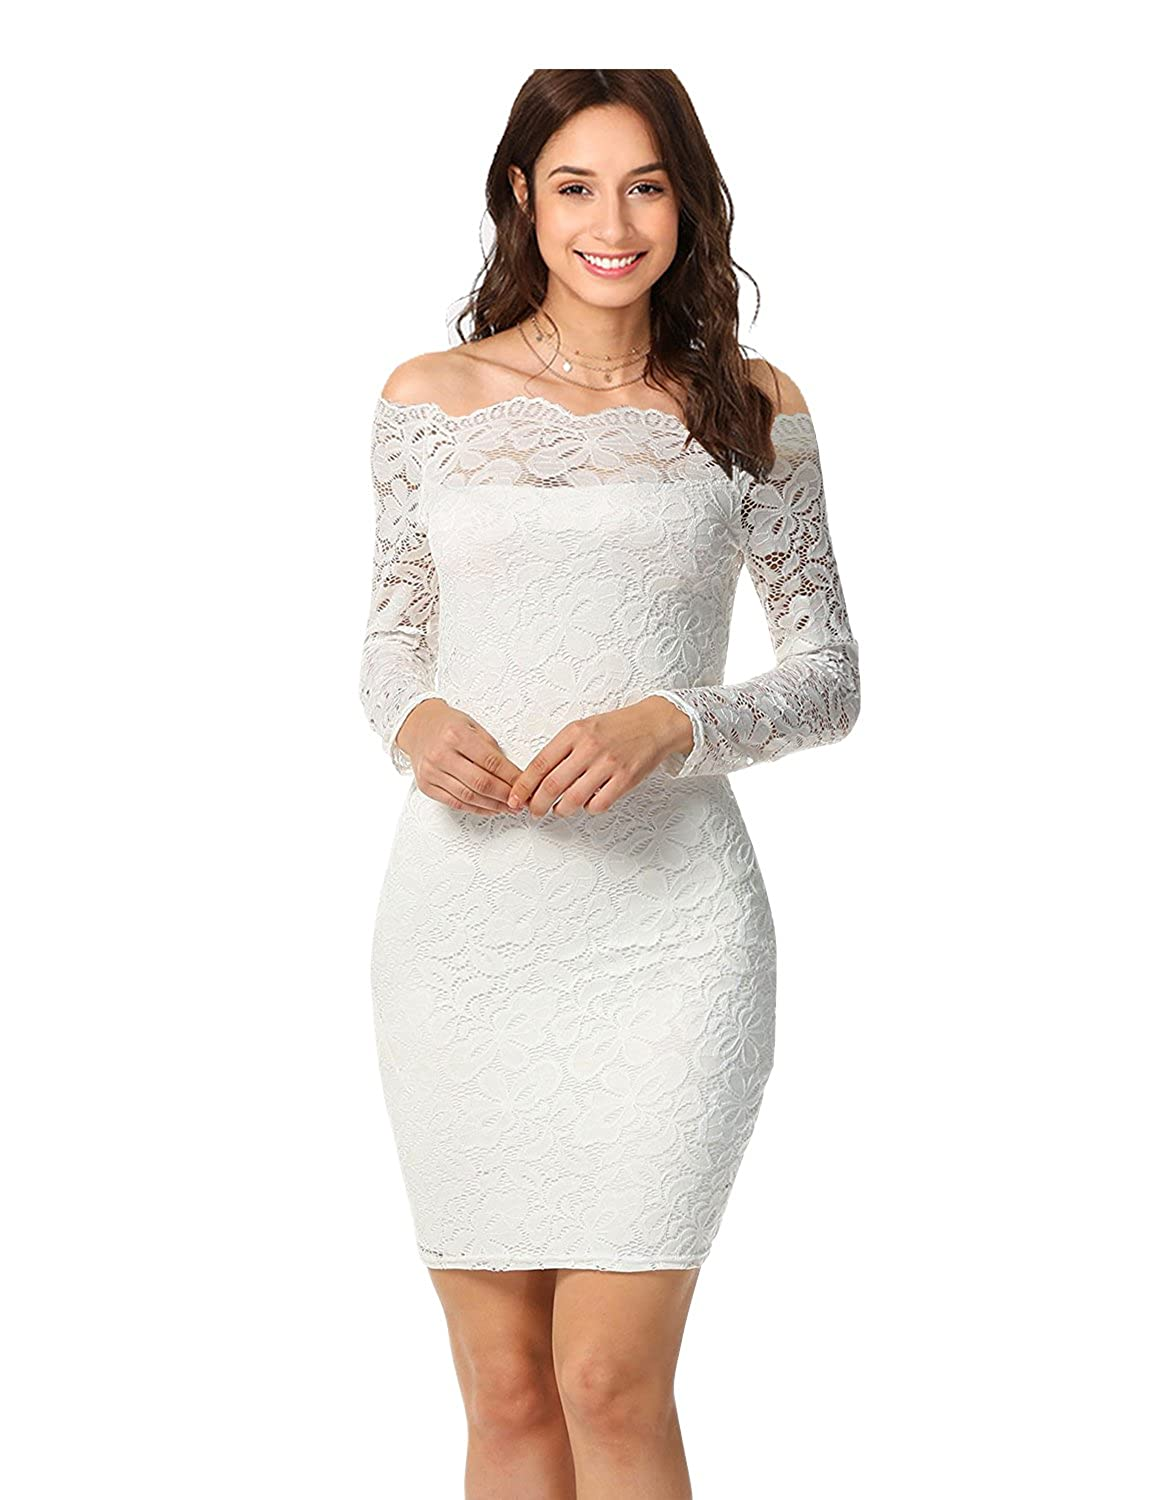 c74151fdf0f imimimomo Women s Vintage Floral Lace Dress Long Sleeve Bodycon Cocktail  Party Wedding Formal Swing Dress